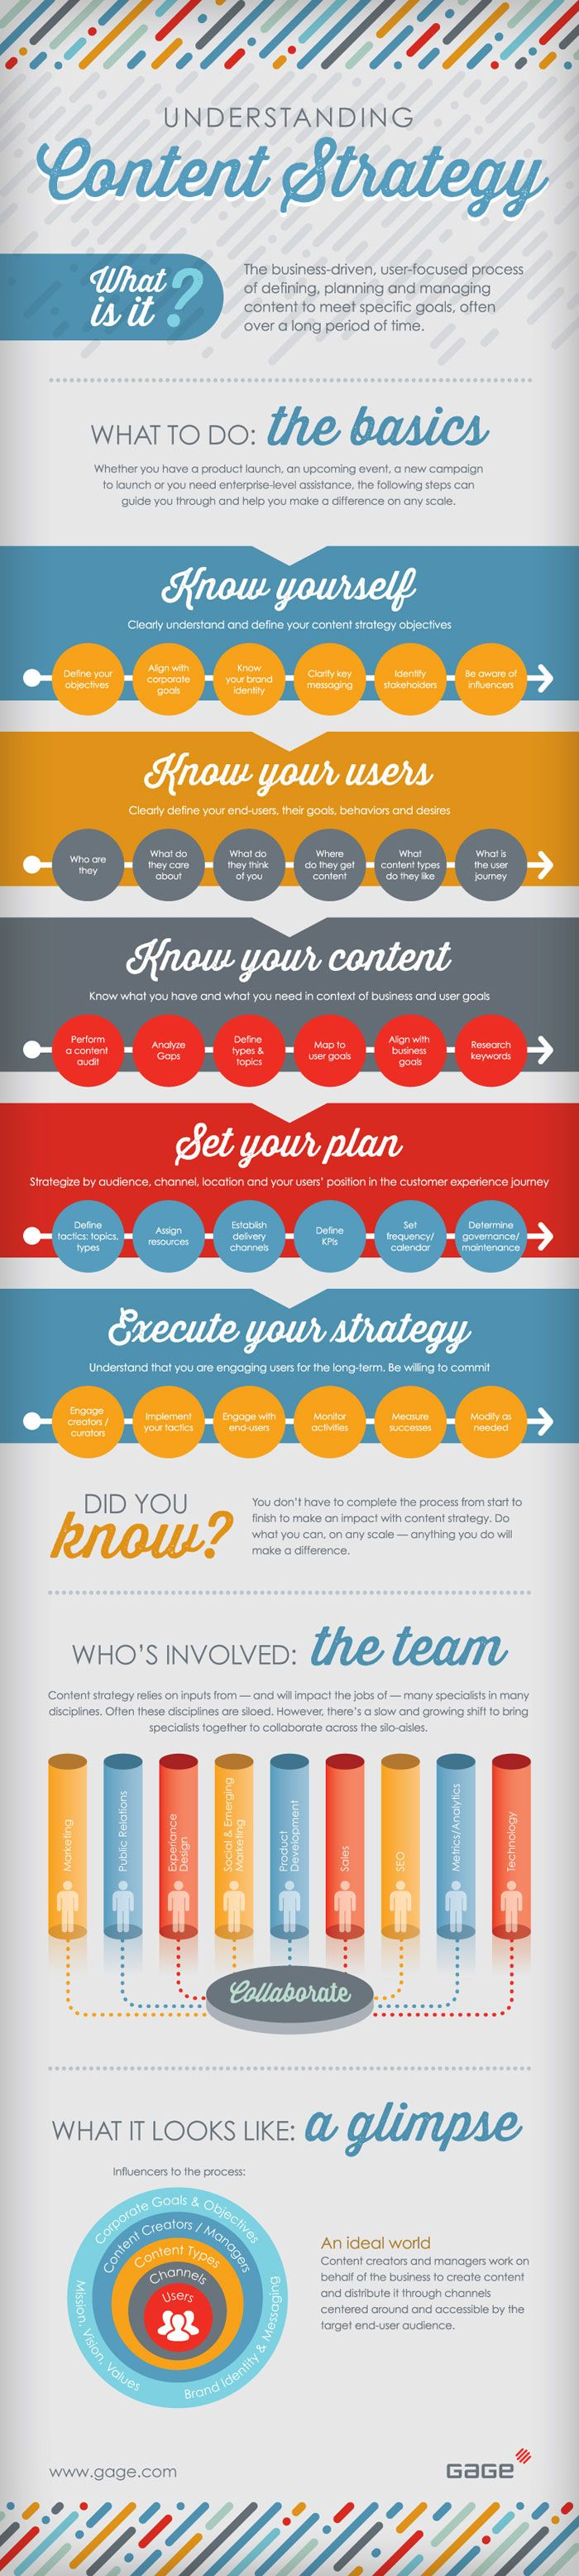 Understanding Content Strategy #infographic